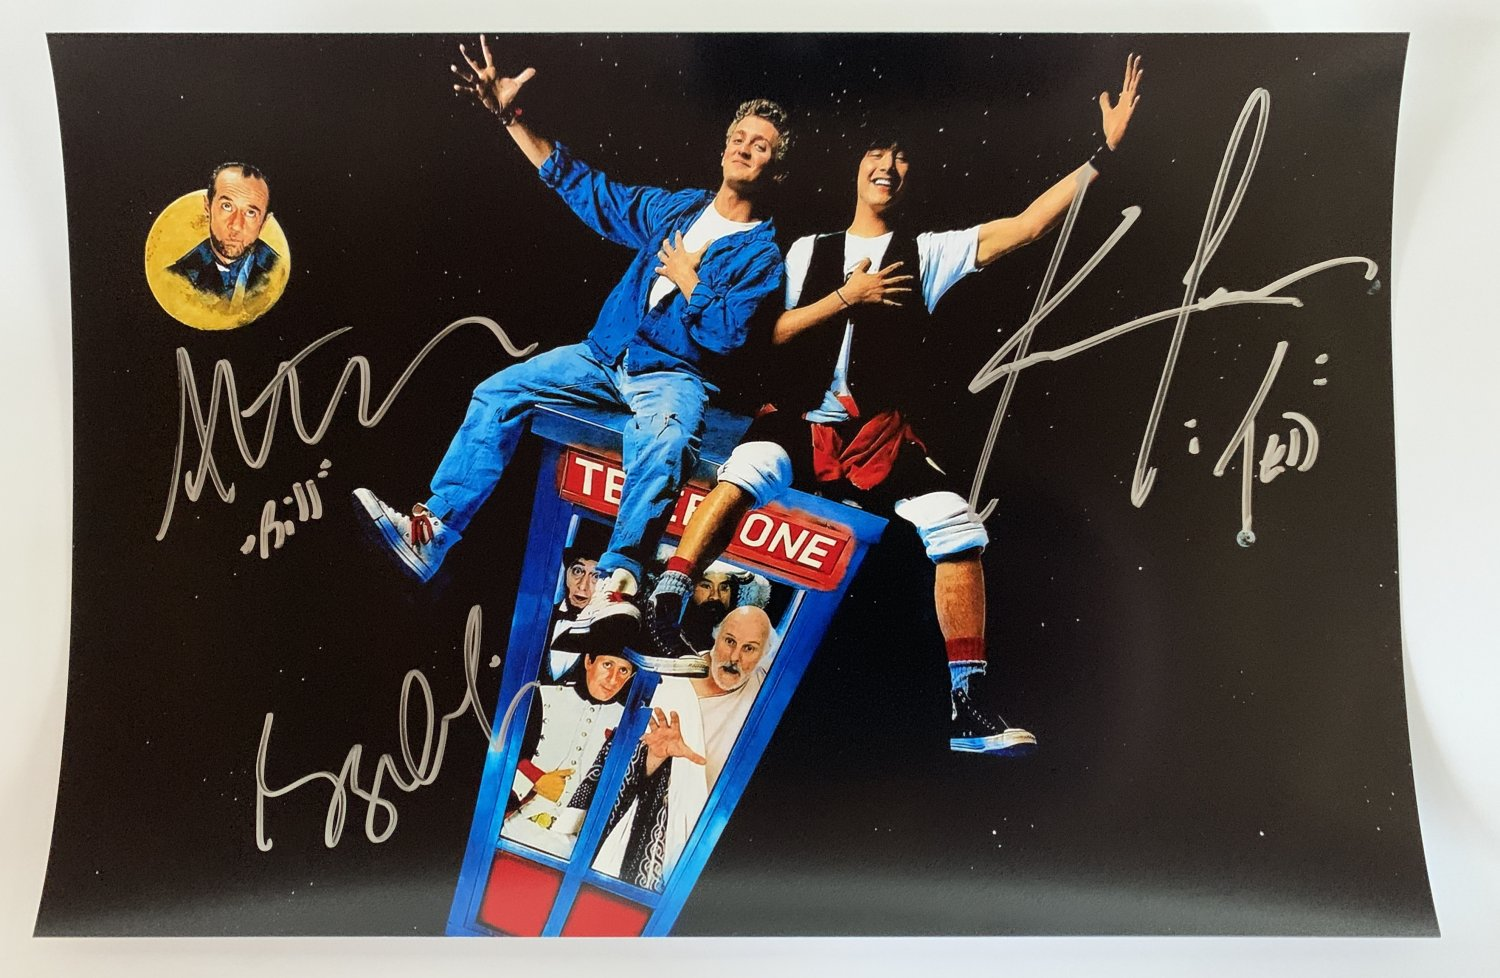 Bill and Ted's Excellent Adventure cast signed autographed 8x12 photo Keanu Reeves